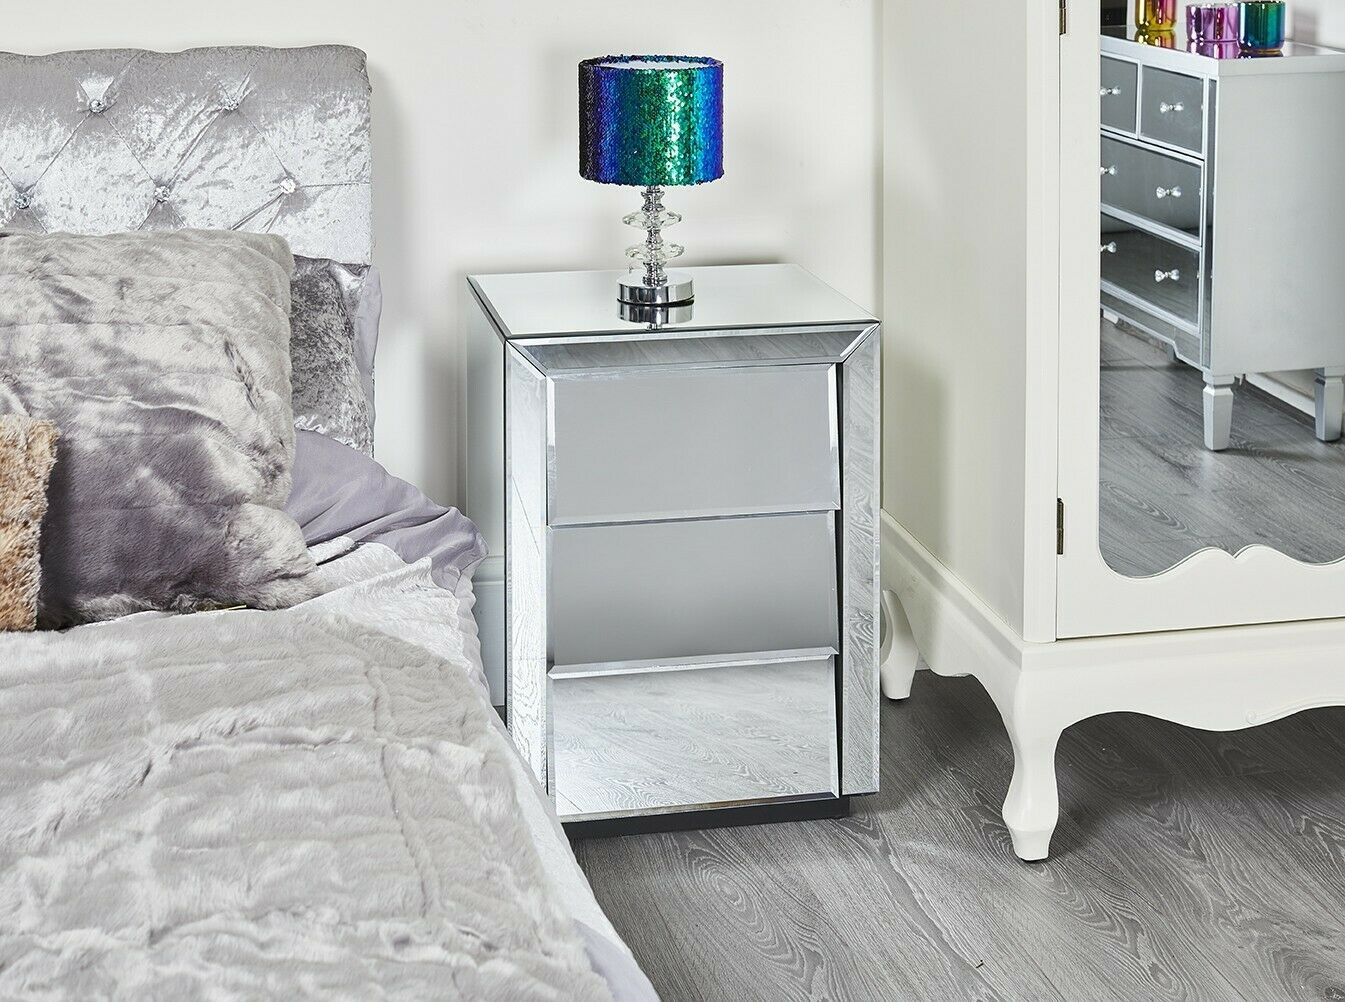 Mirrored Glass 3drawer Bedside Venetian Bedroom Night Stand Lamp Table Shelf